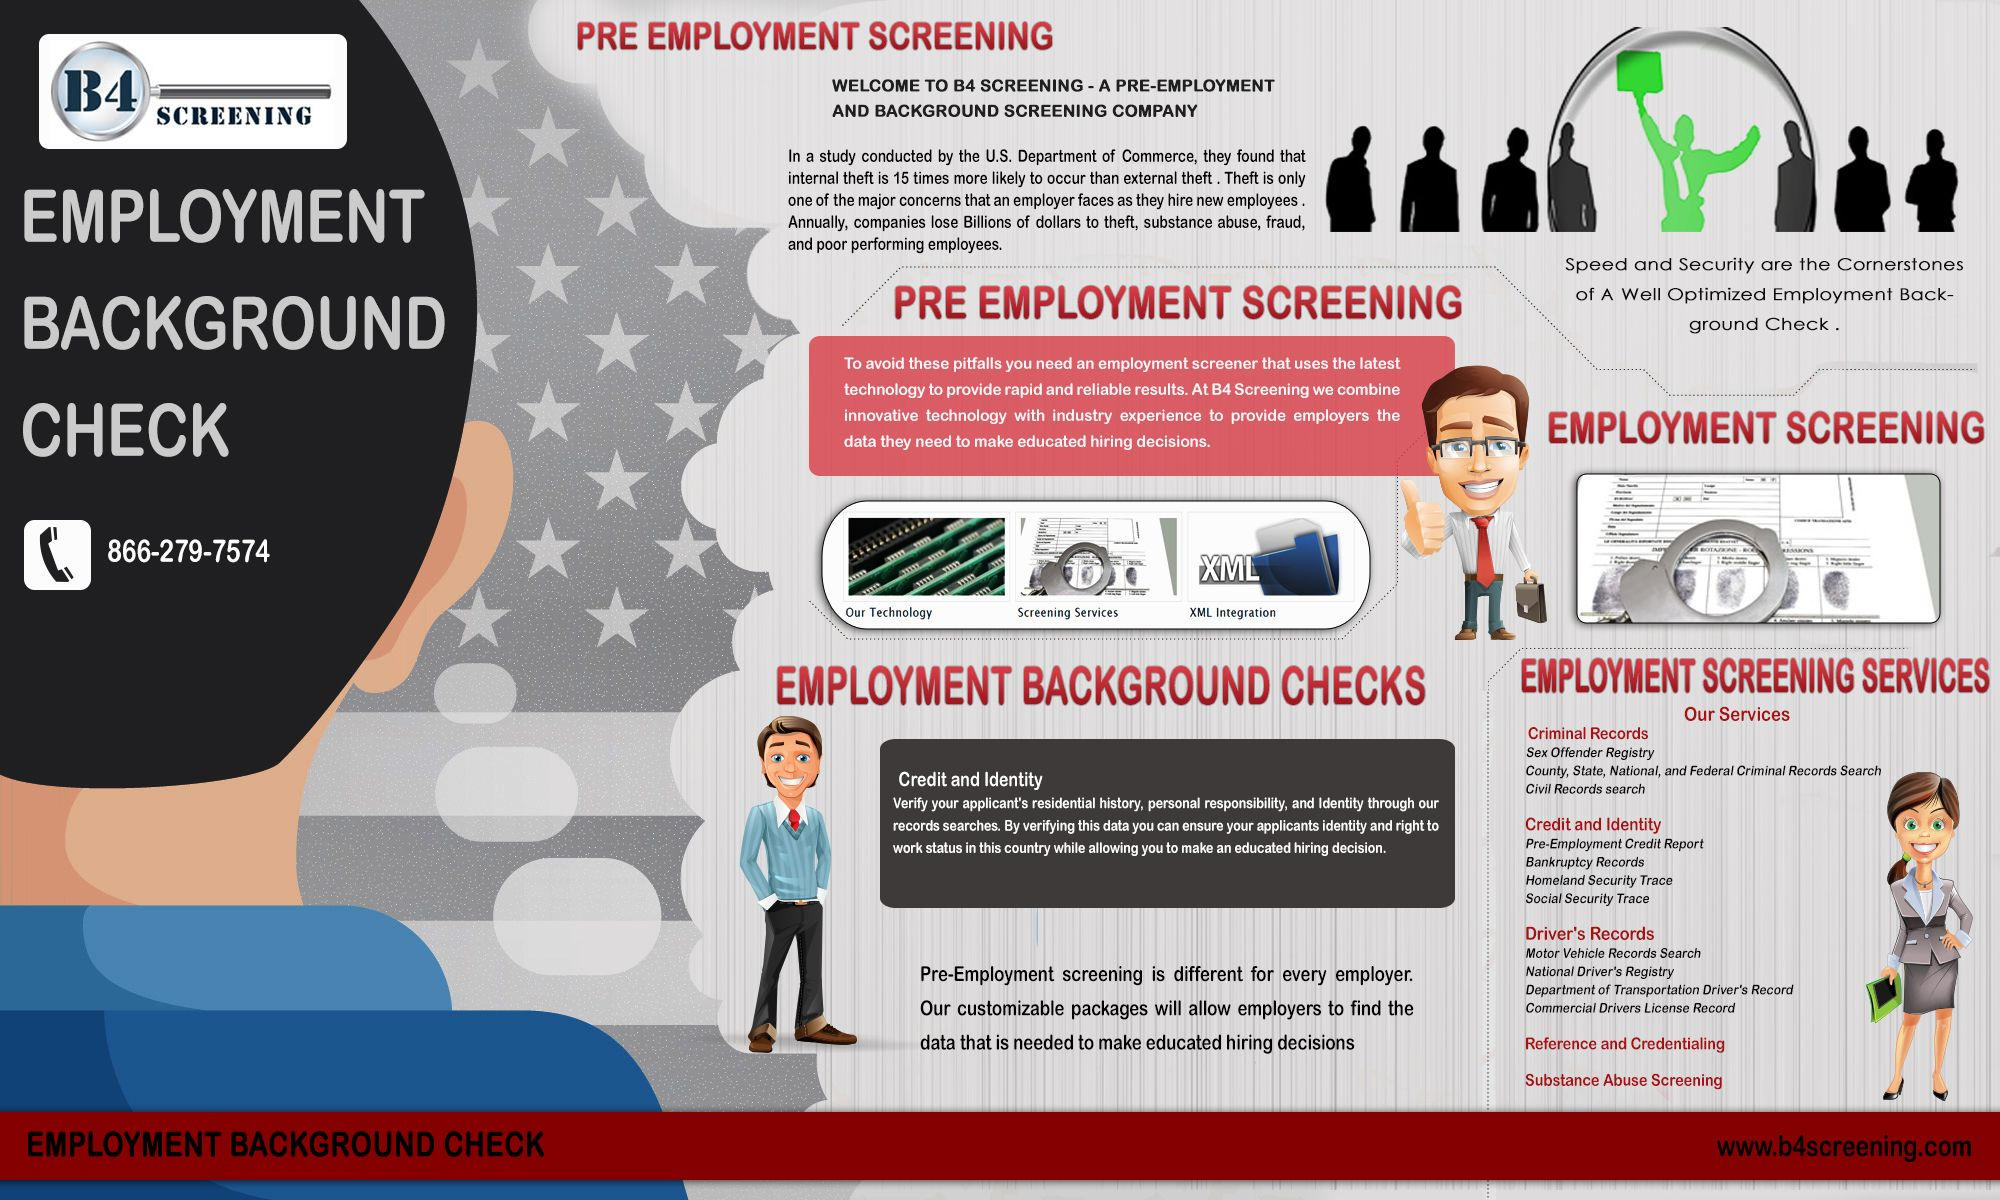 Employers Conduct Employment Background Checks For A Variety Of